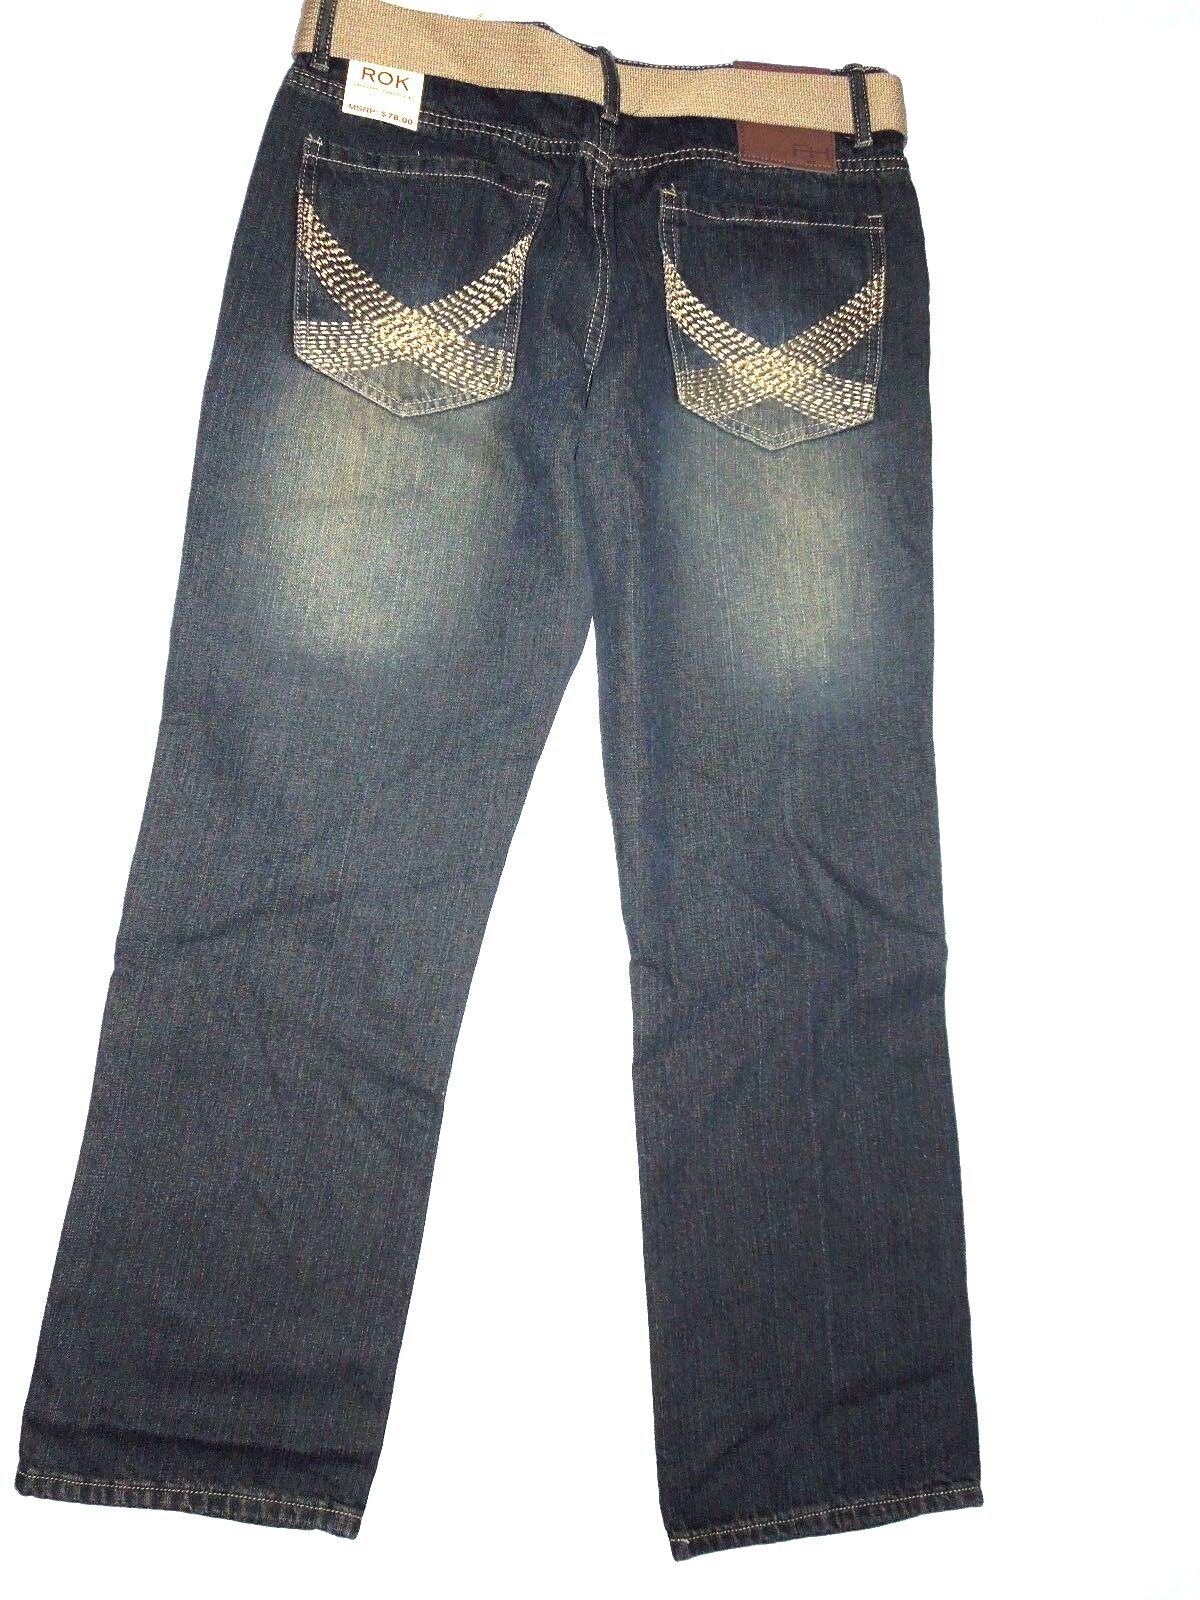 ROK mens relaxed fit bluee denim JEANS  size 34  X 32  retail